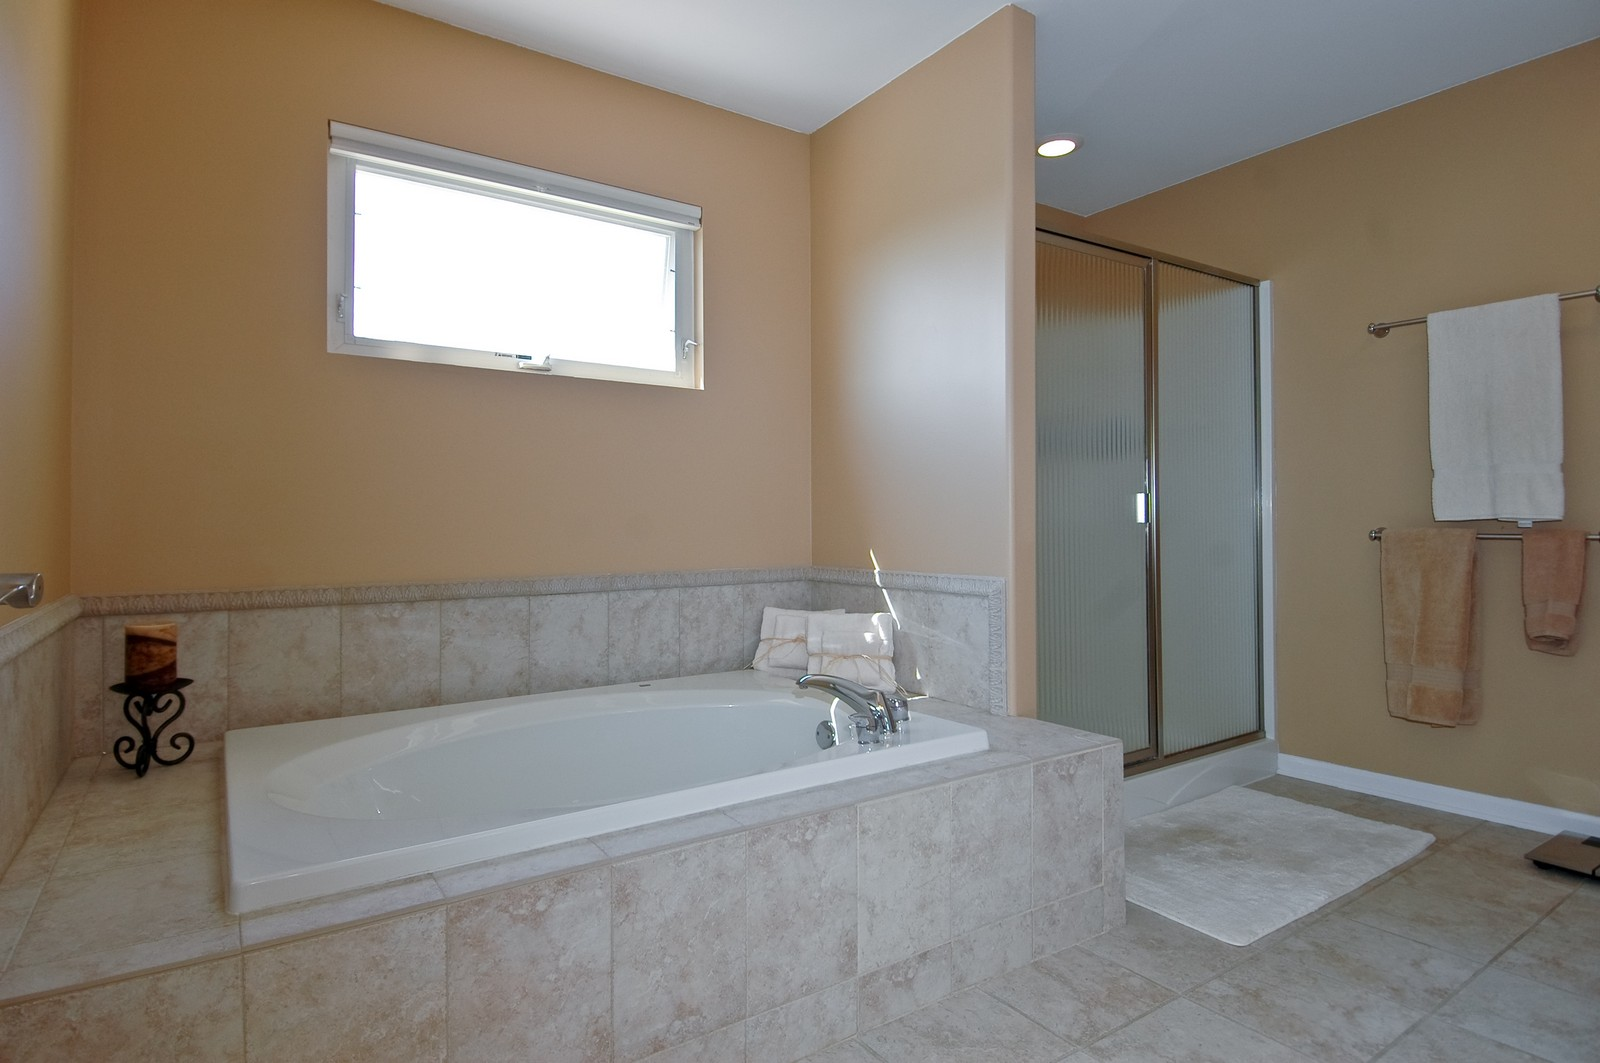 Real Estate Photography - 1484 Rolling Hills Drive, Crystal Lake, IL, 60014 - Master Bathroom